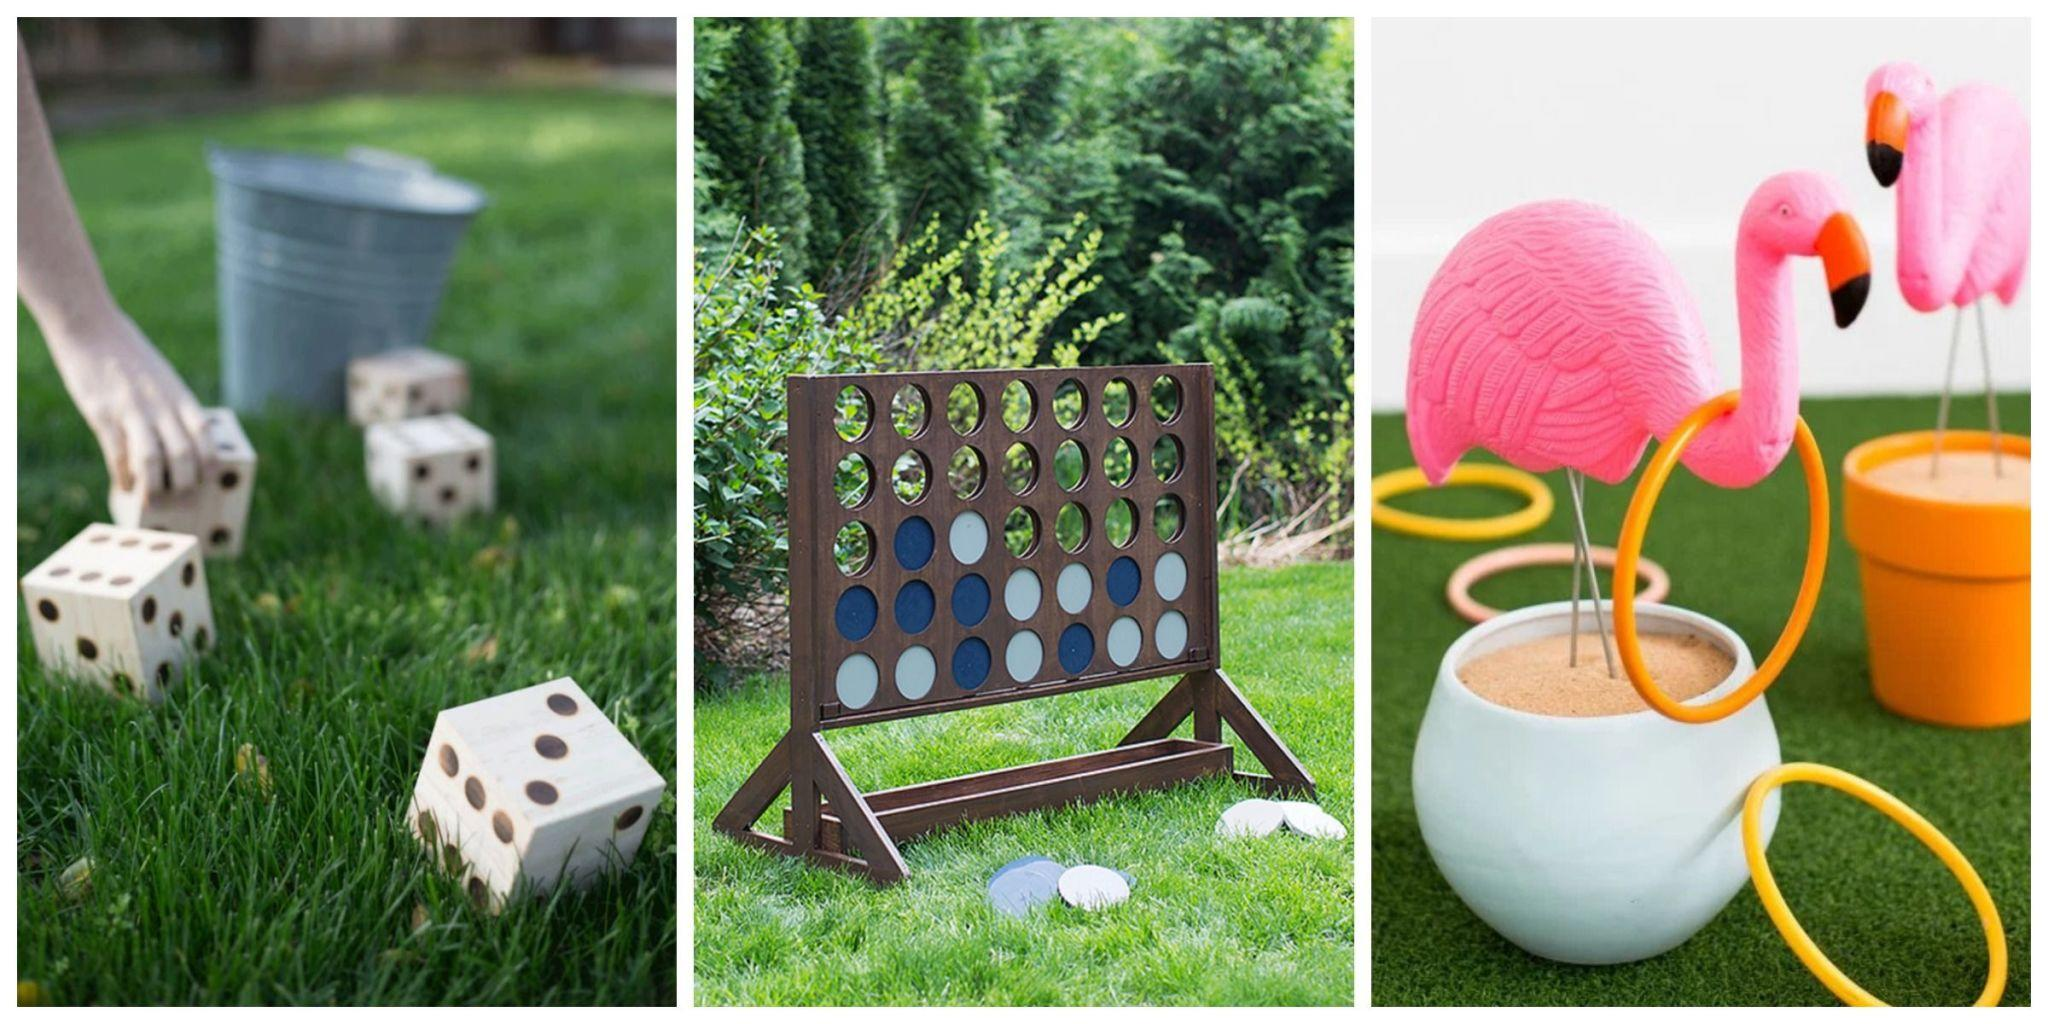 18 diy lawn games you should play this summer